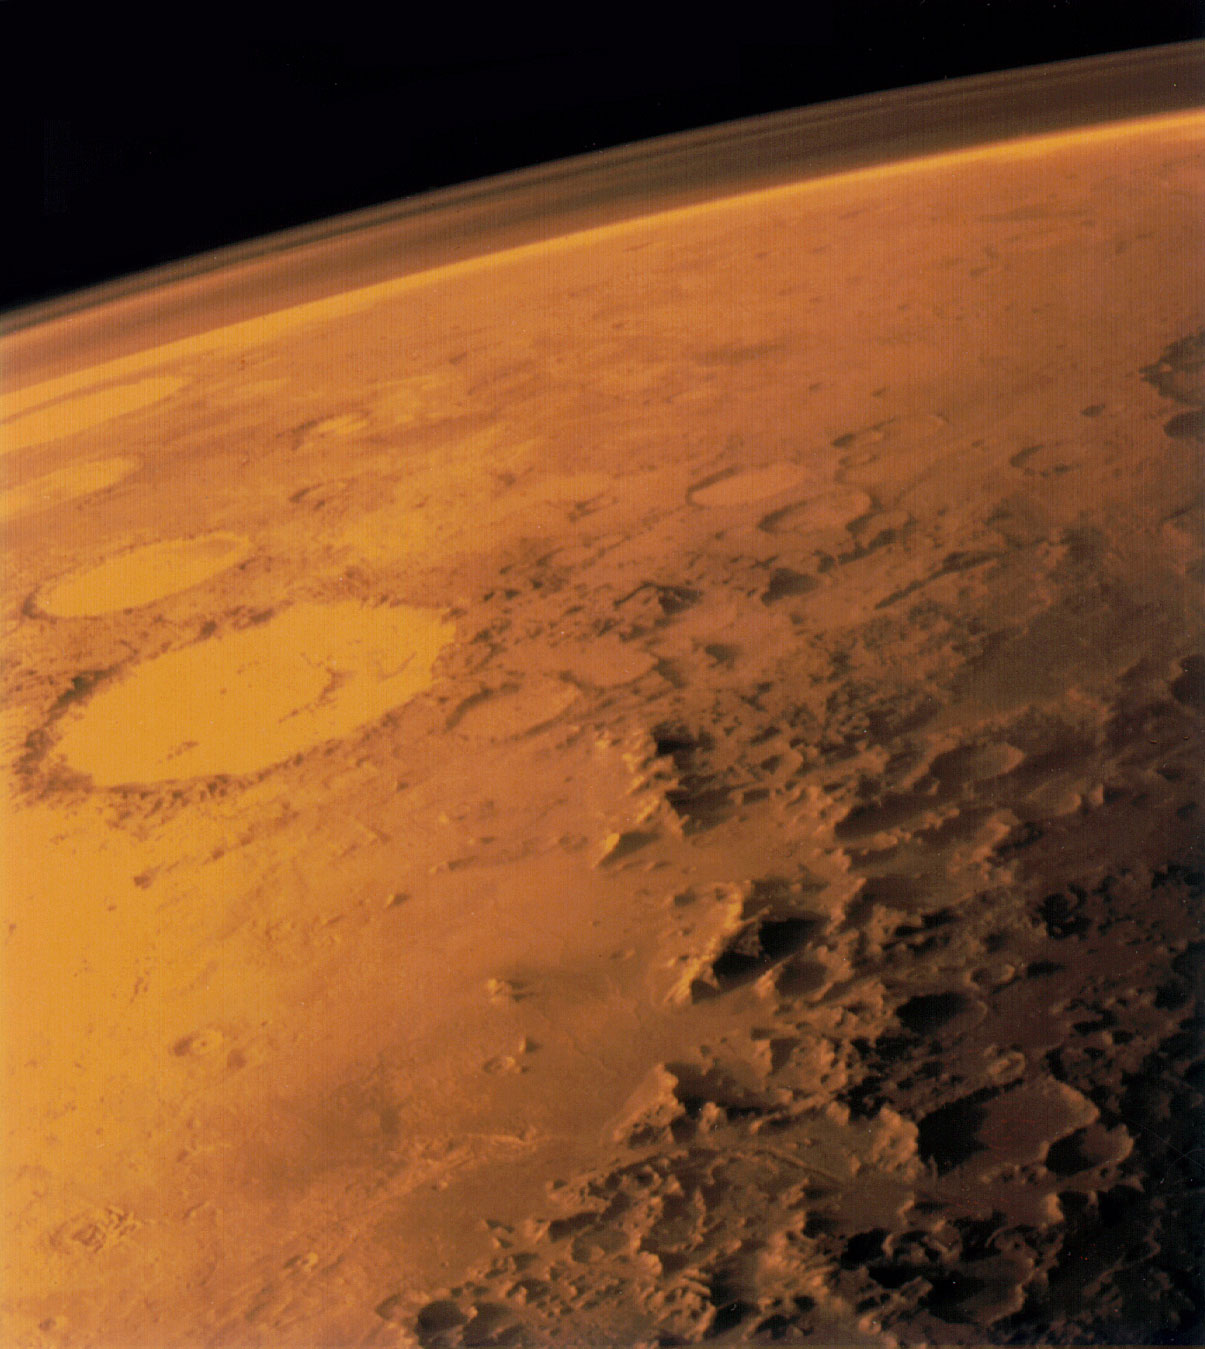 spacecraft of the astronauts on mars - photo #25